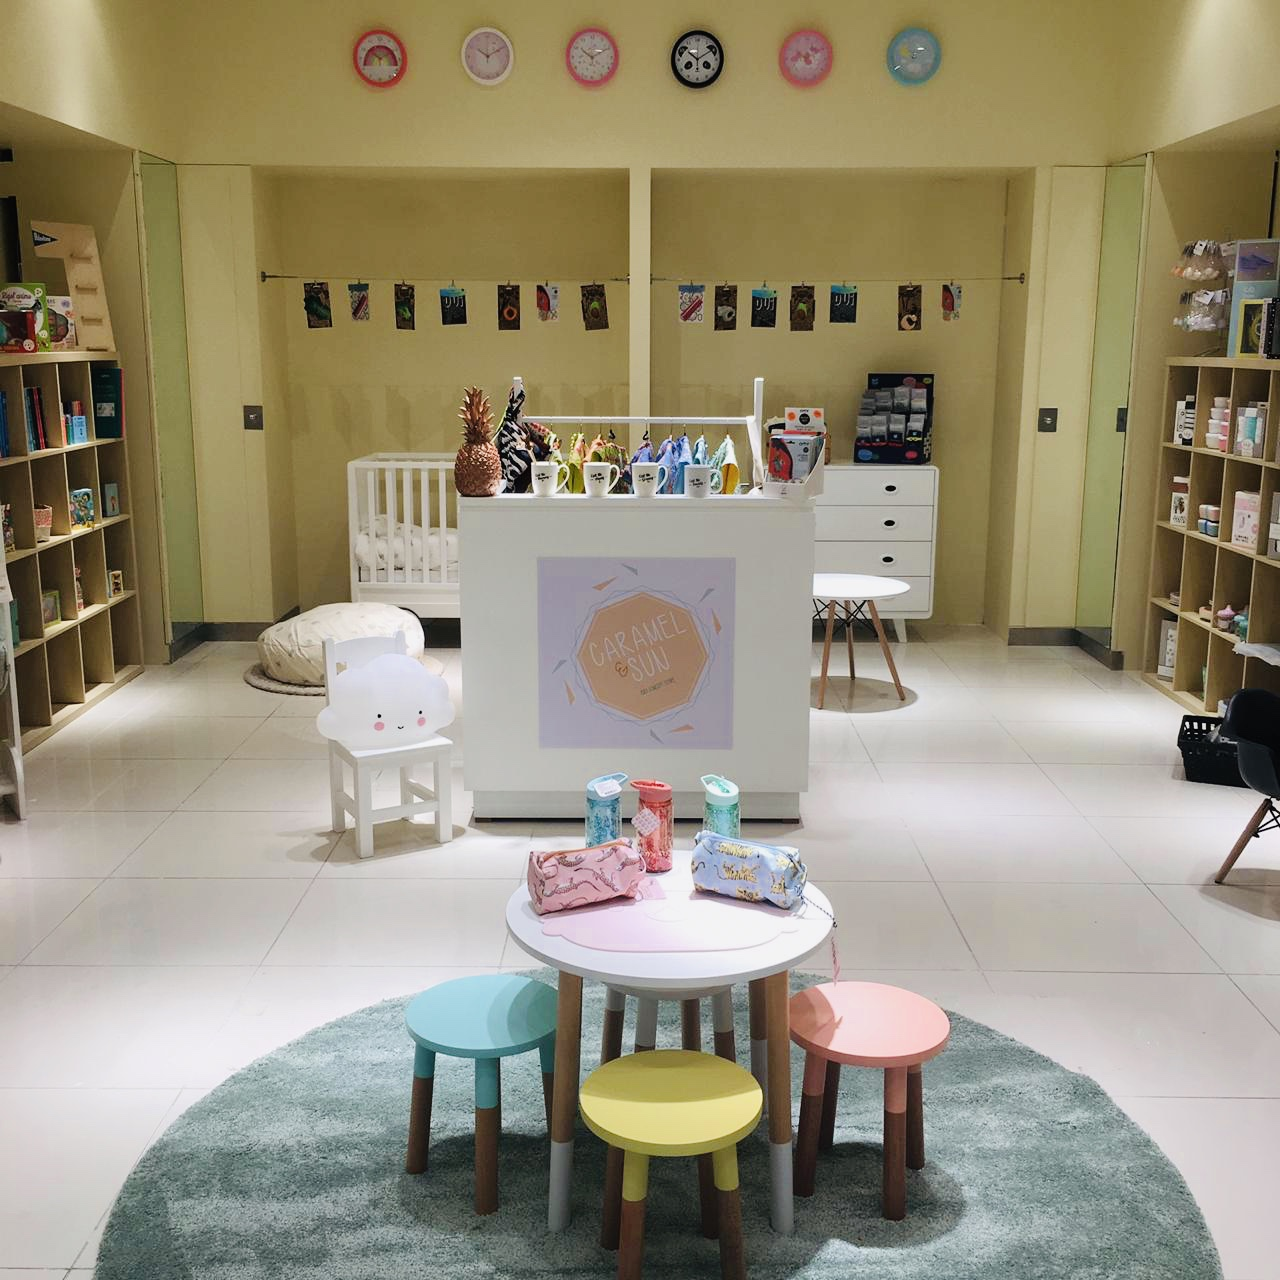 Pomme Kids Furniture for kids Caramel and Sun Abu Dhabi mall